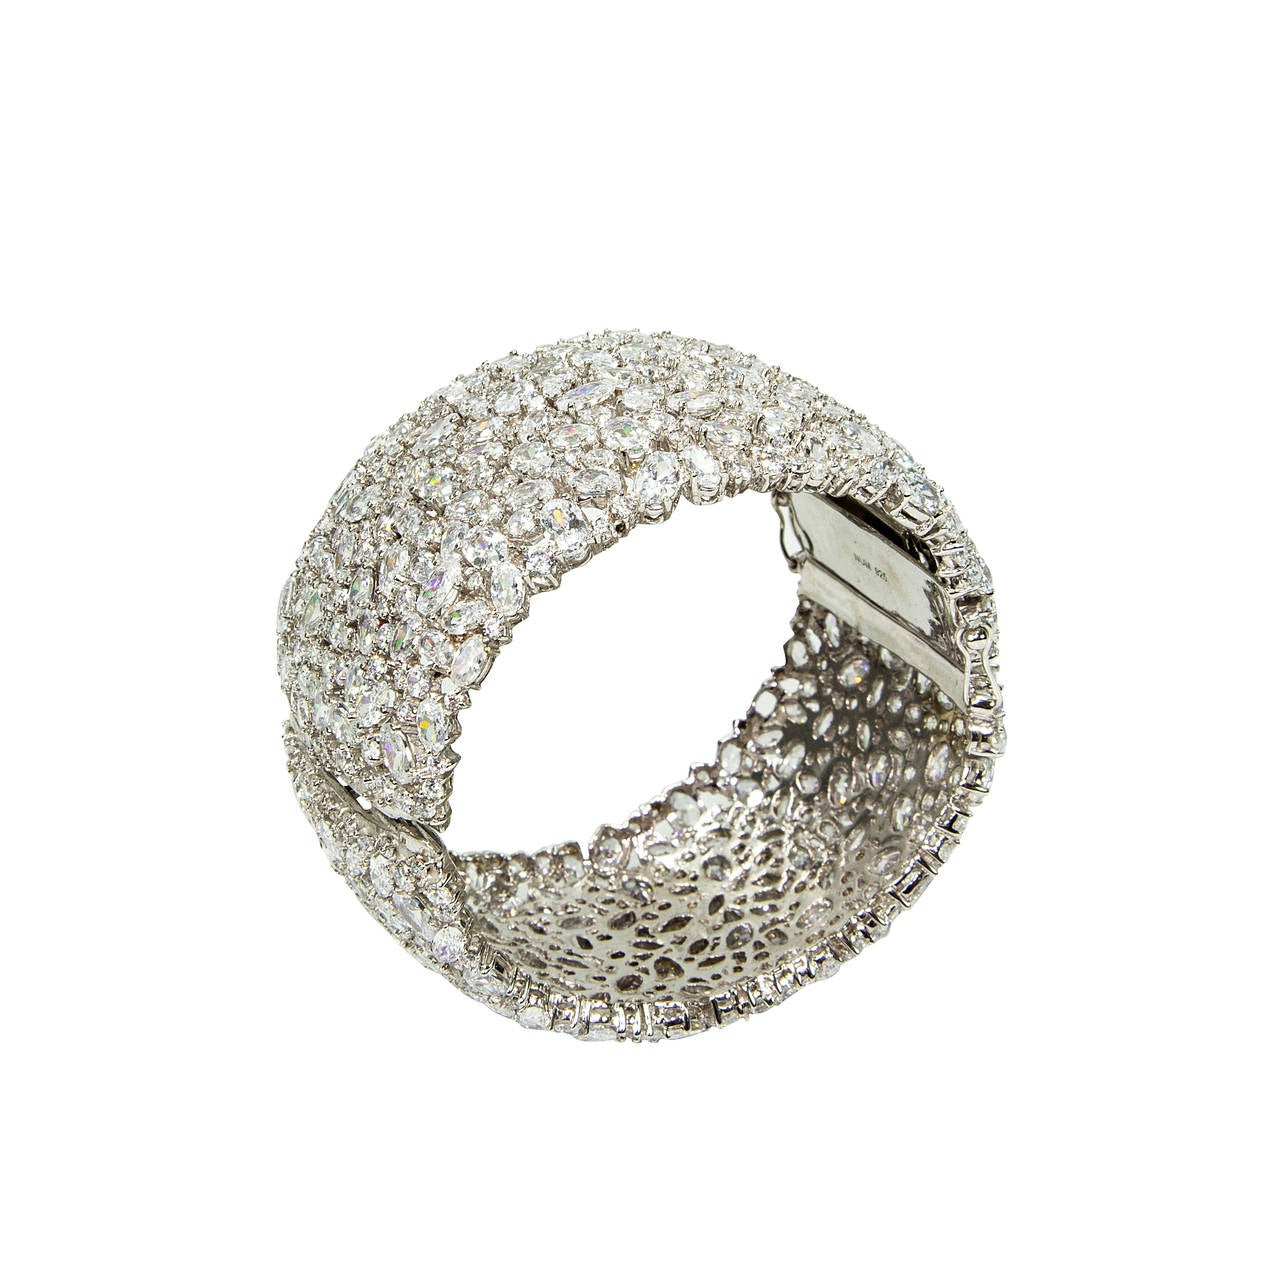 Striking Wide Sterling Silver Cz Encrusted Cuff Bracelet